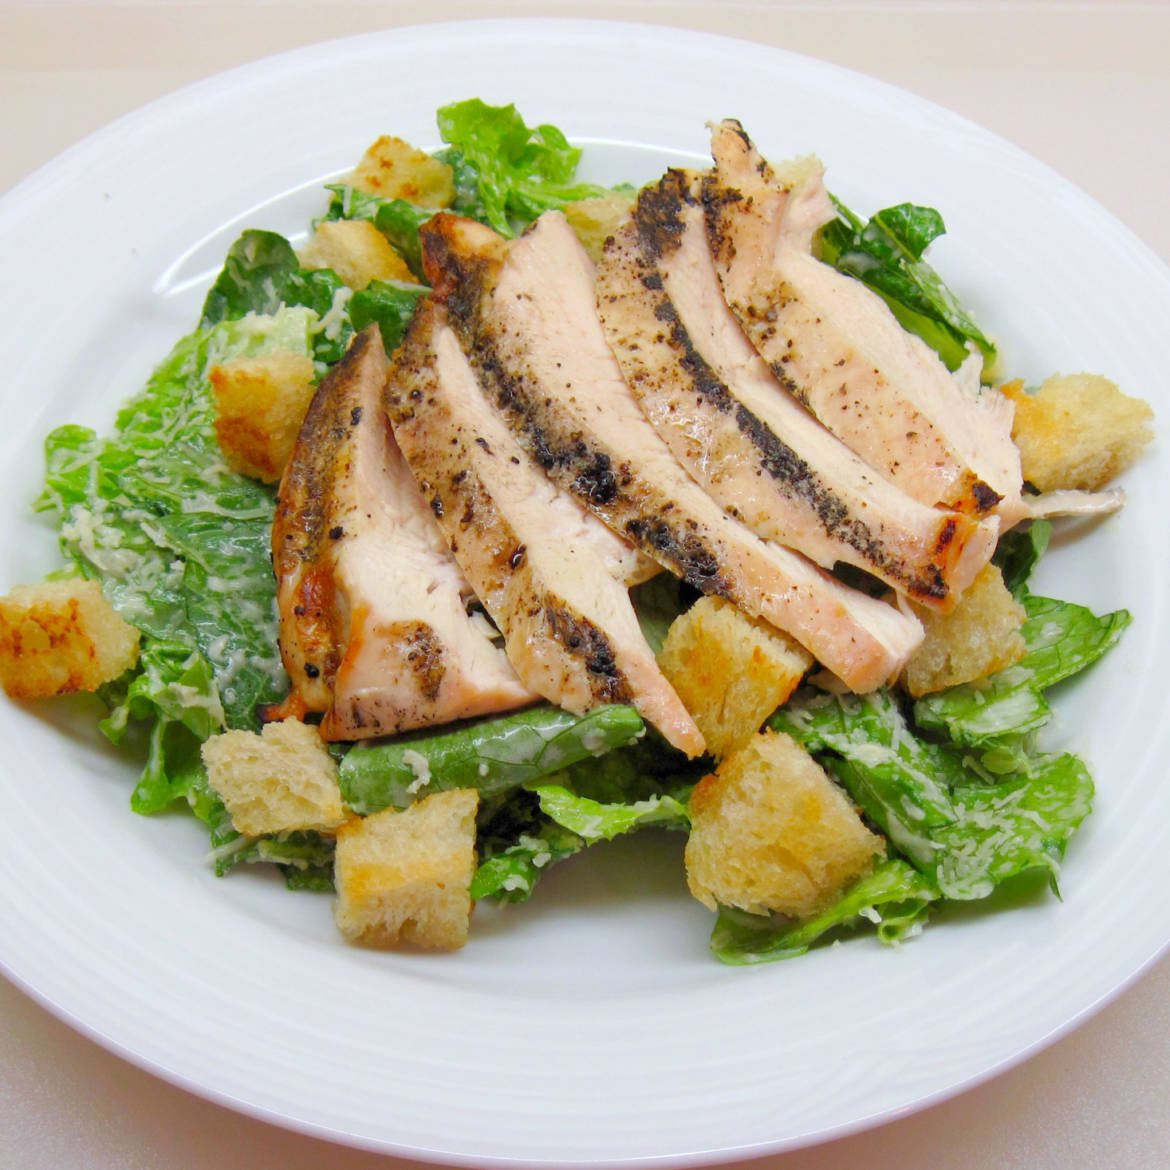 caesar-salad-4-with-grilled-chicken1.jpg